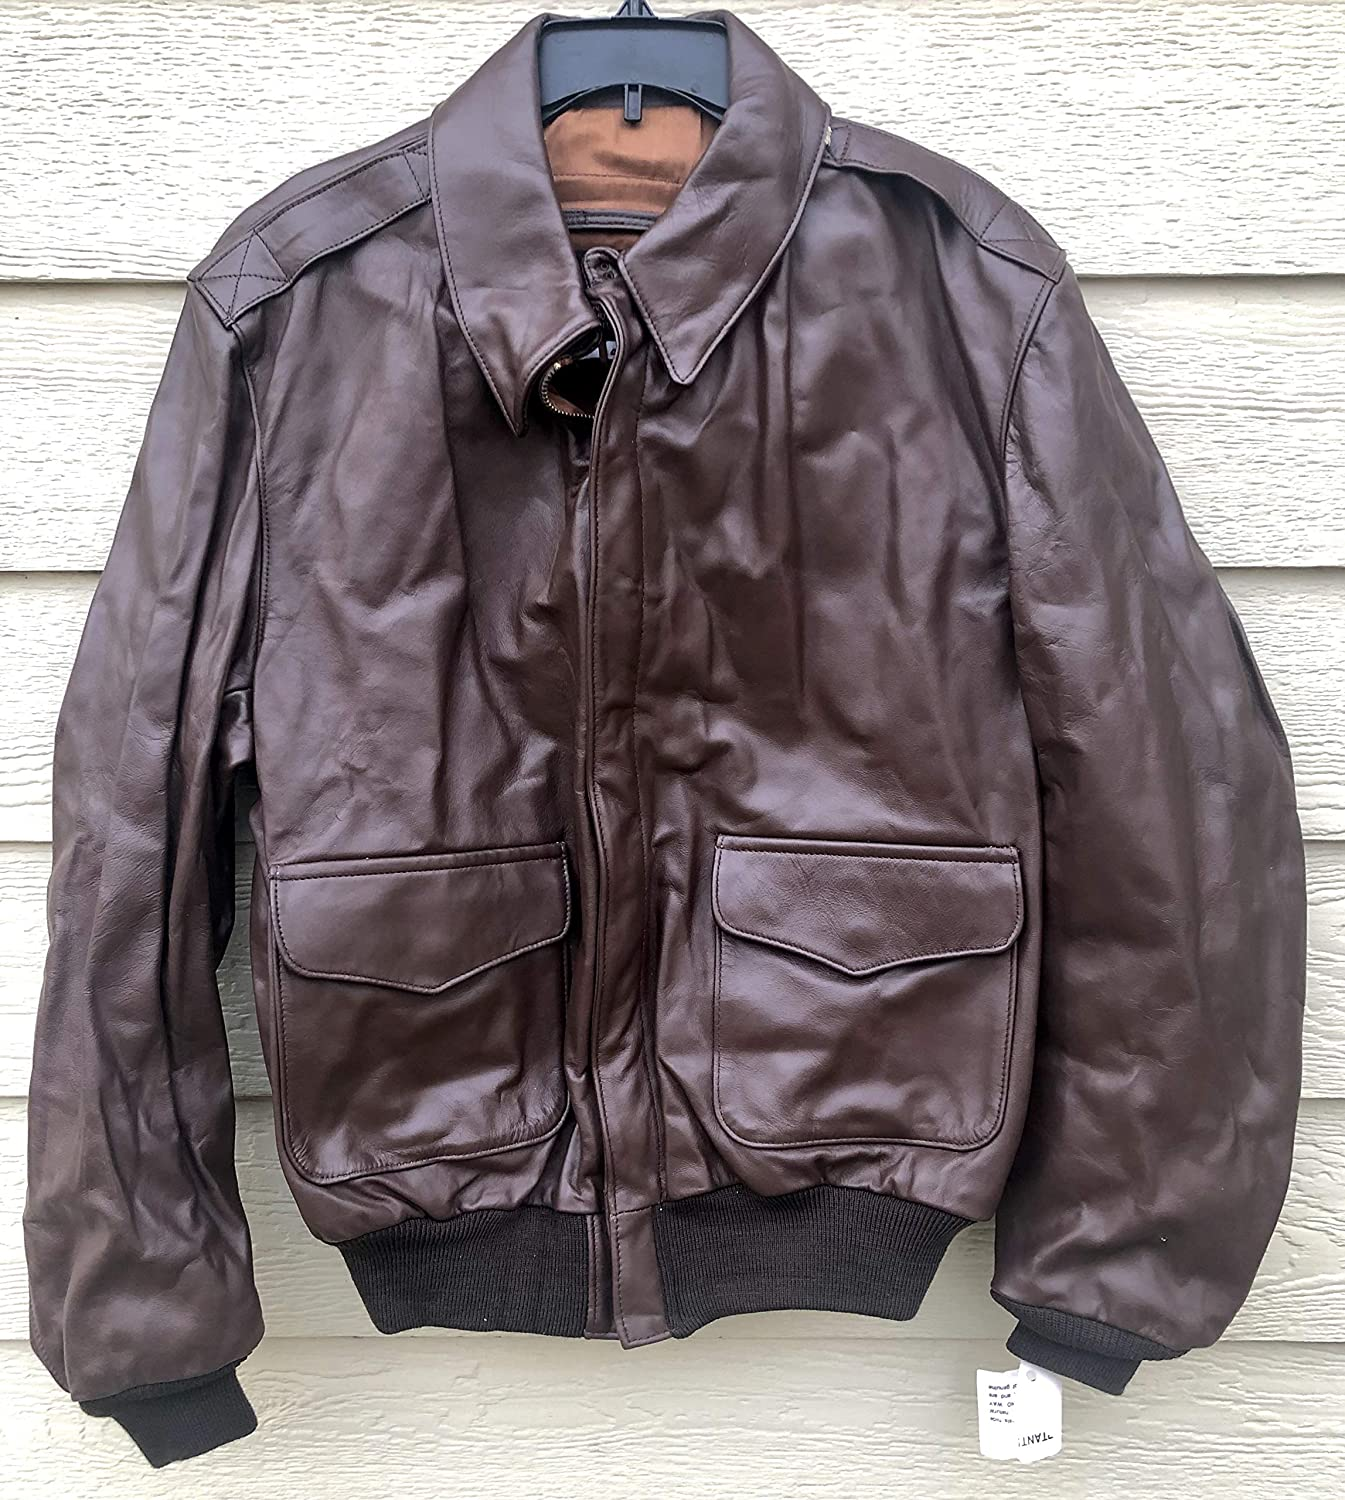 US Army Air Force Genuine Leather A-2 Bombers Flyers Men's Flight Jacket - Size 46L